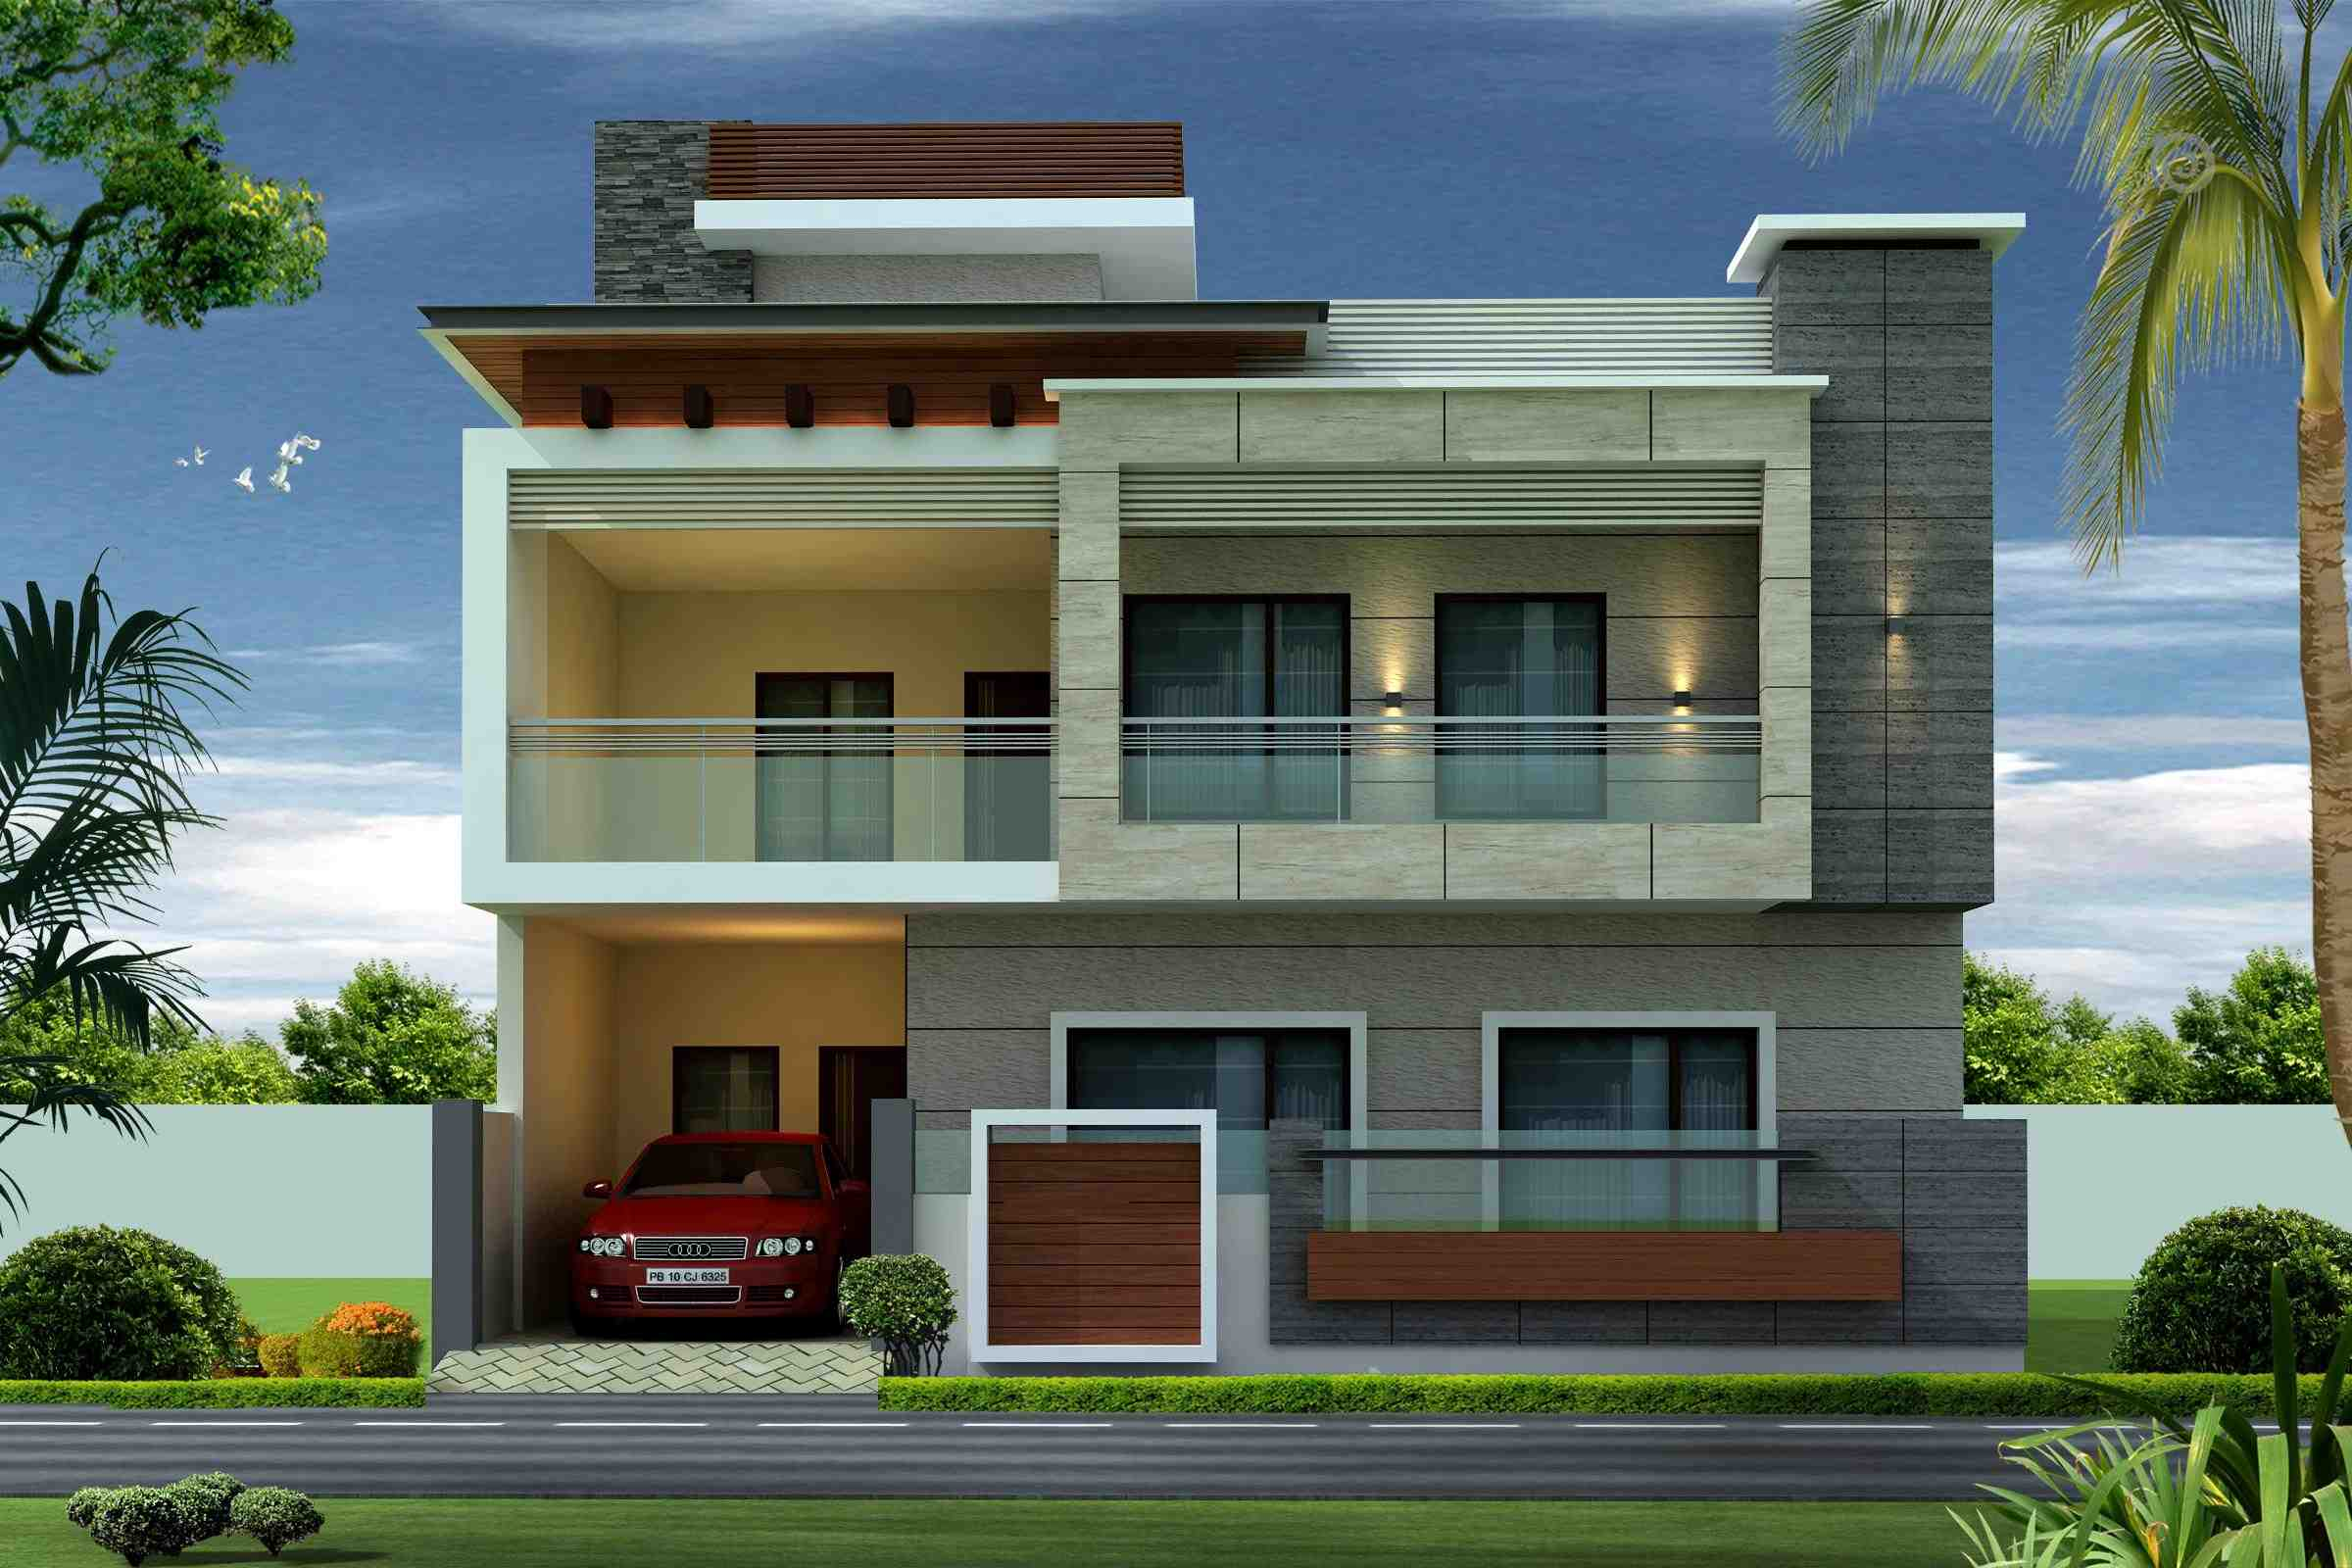 Architectural house plans in punjab for Architecture design for home in punjab